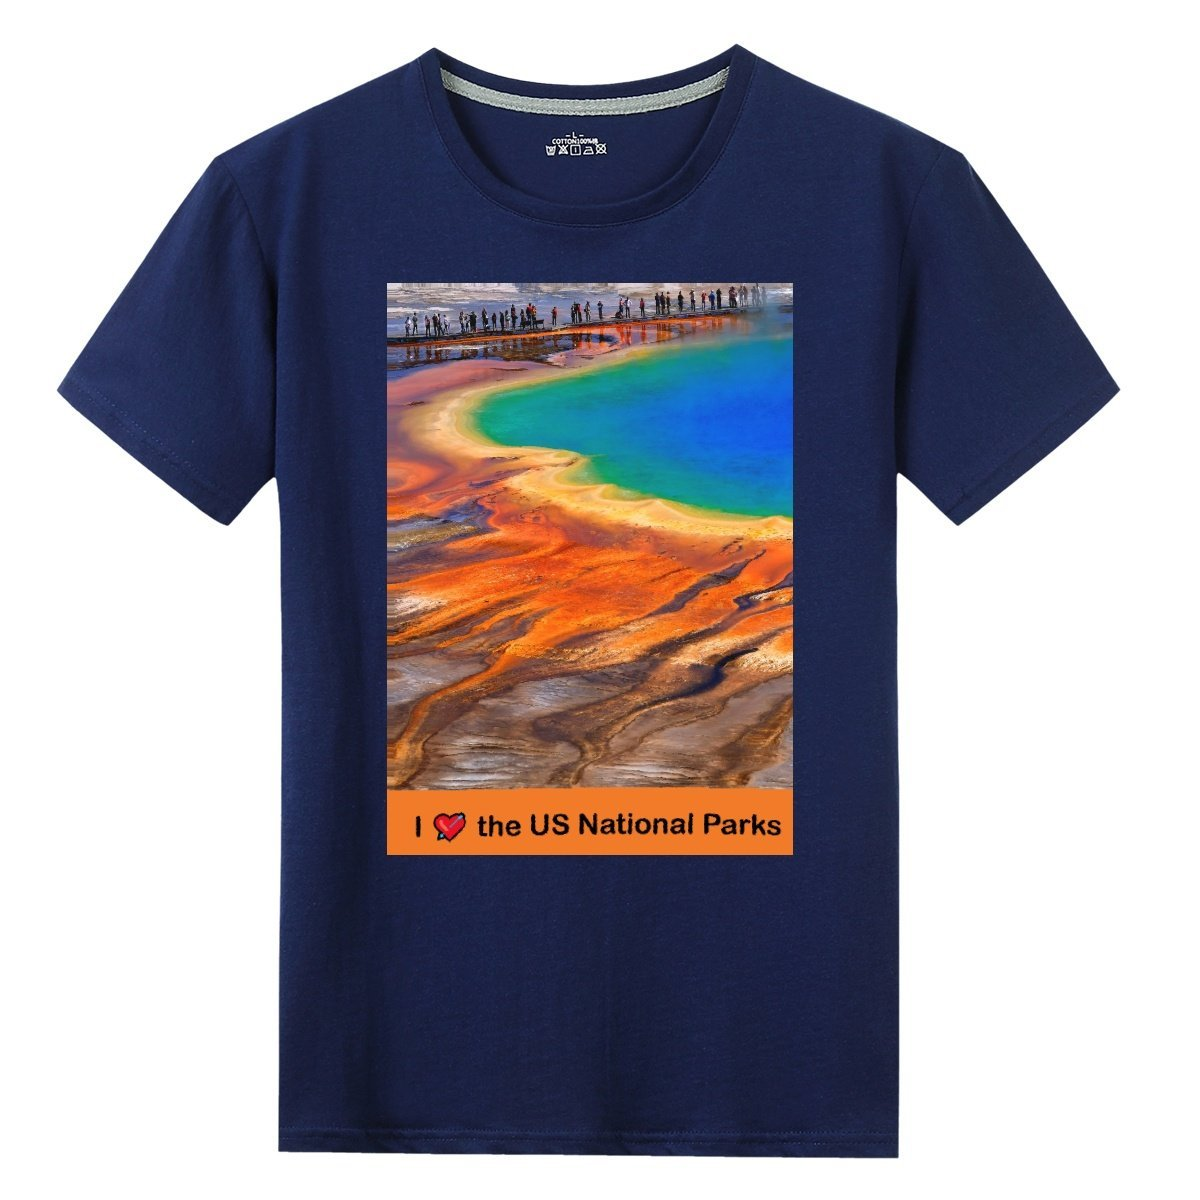 Gildan Sale $9 - 100% Cotton - UNISEX Front Print T-shirt - Image of Yellowstone Thermal Pool and text: I 💘 the US National Parks - Yunque Store